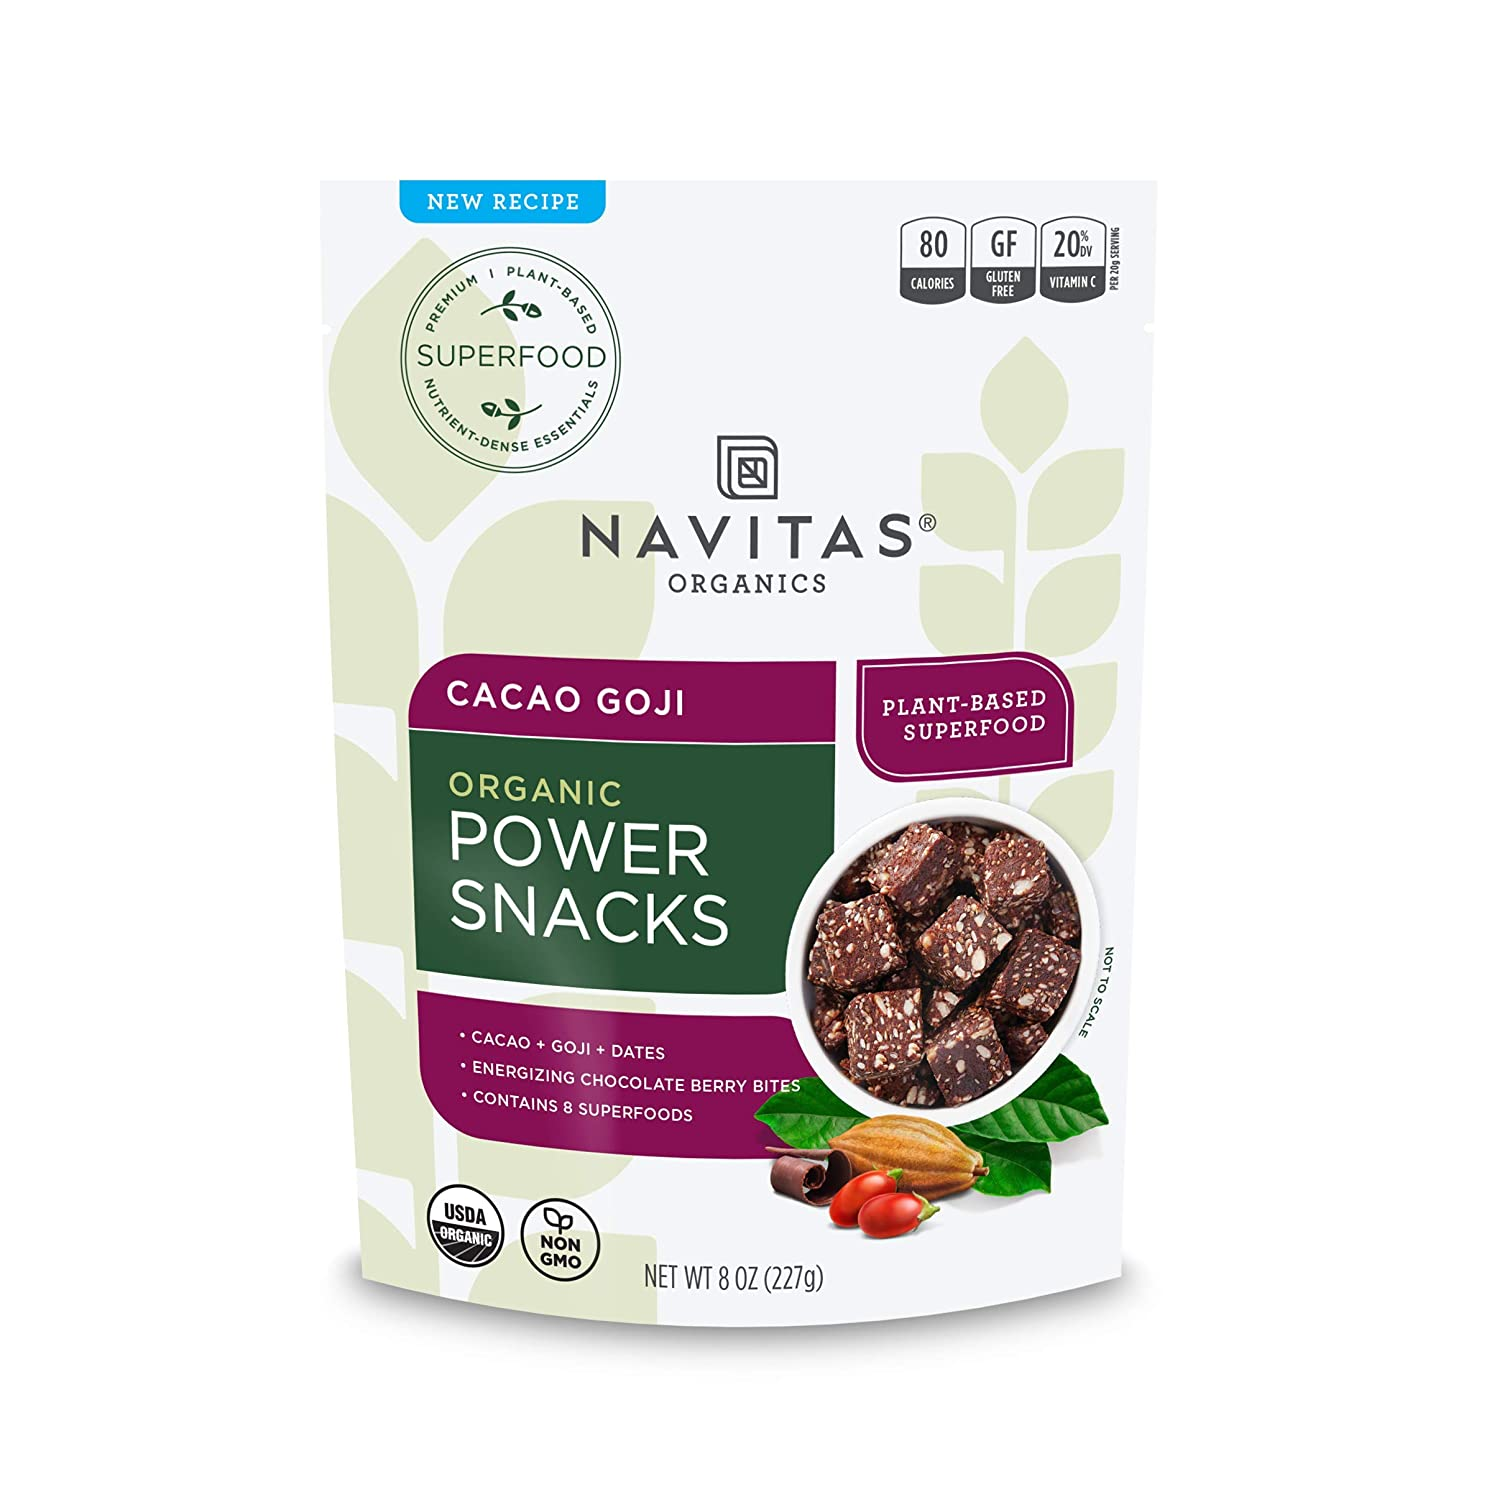 Navitas Organics Superfood Power Snacks, Cacao Goji, 8oz. Bag — Organic, Non-GMO, Gluten-Free